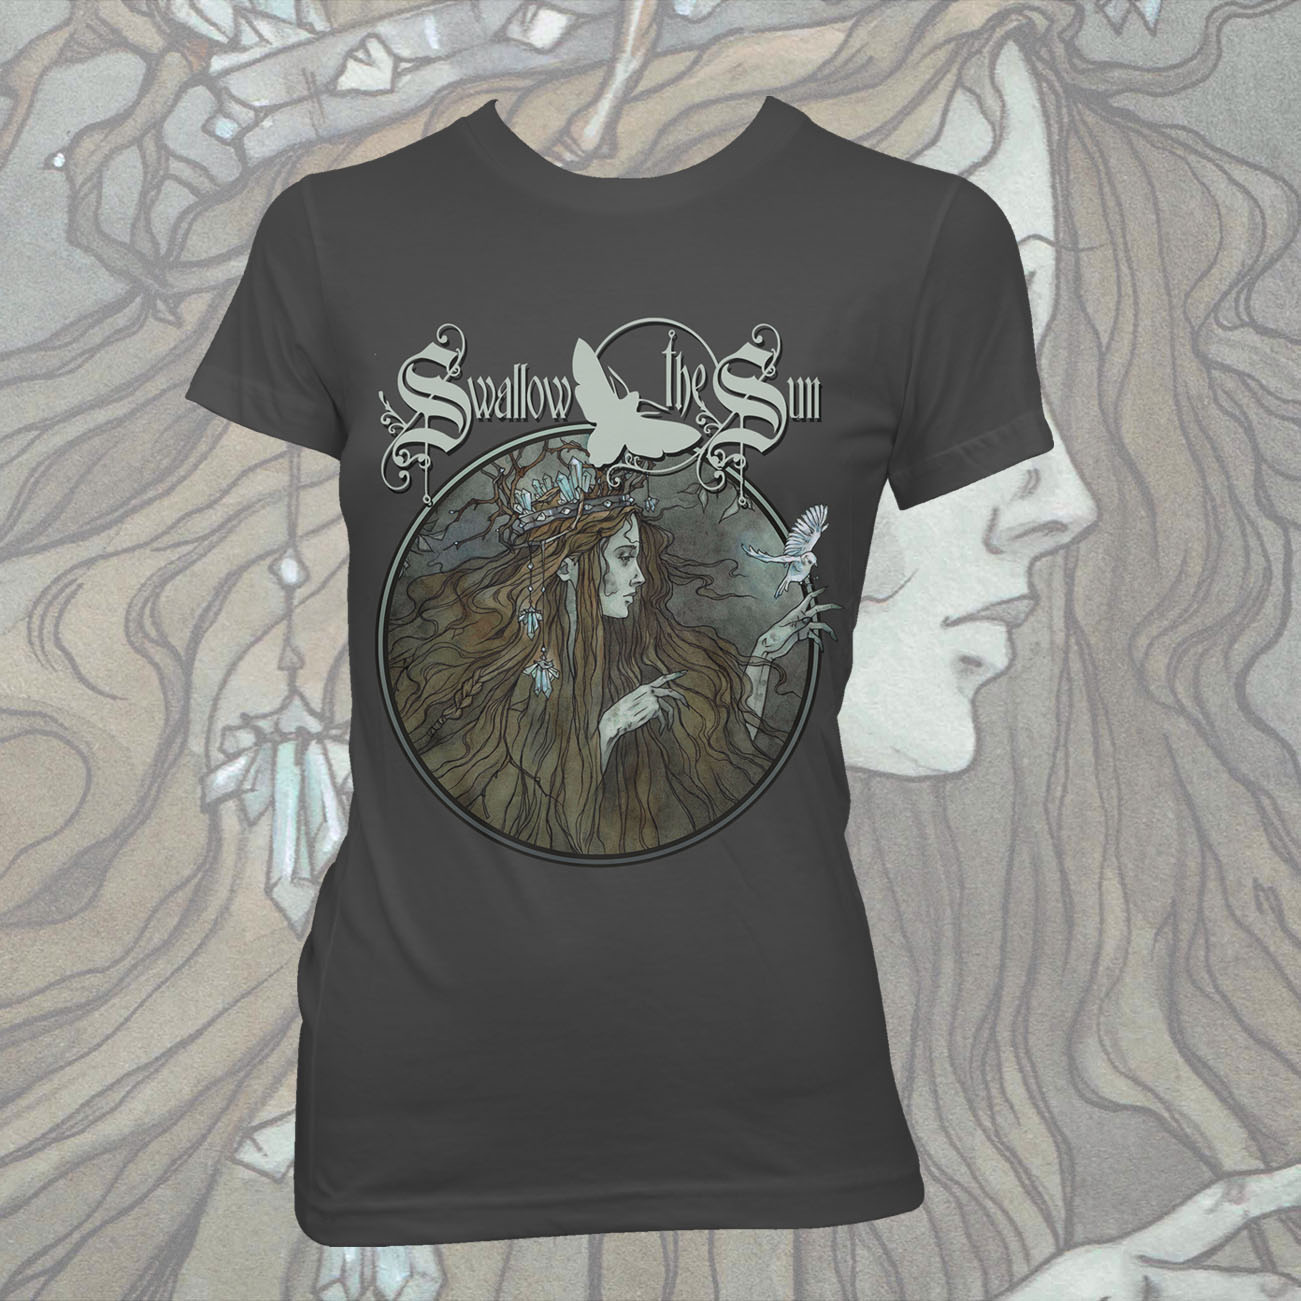 Swallow The Sun - 'Queen' Fitted T-Shirt - Swallow The Sun